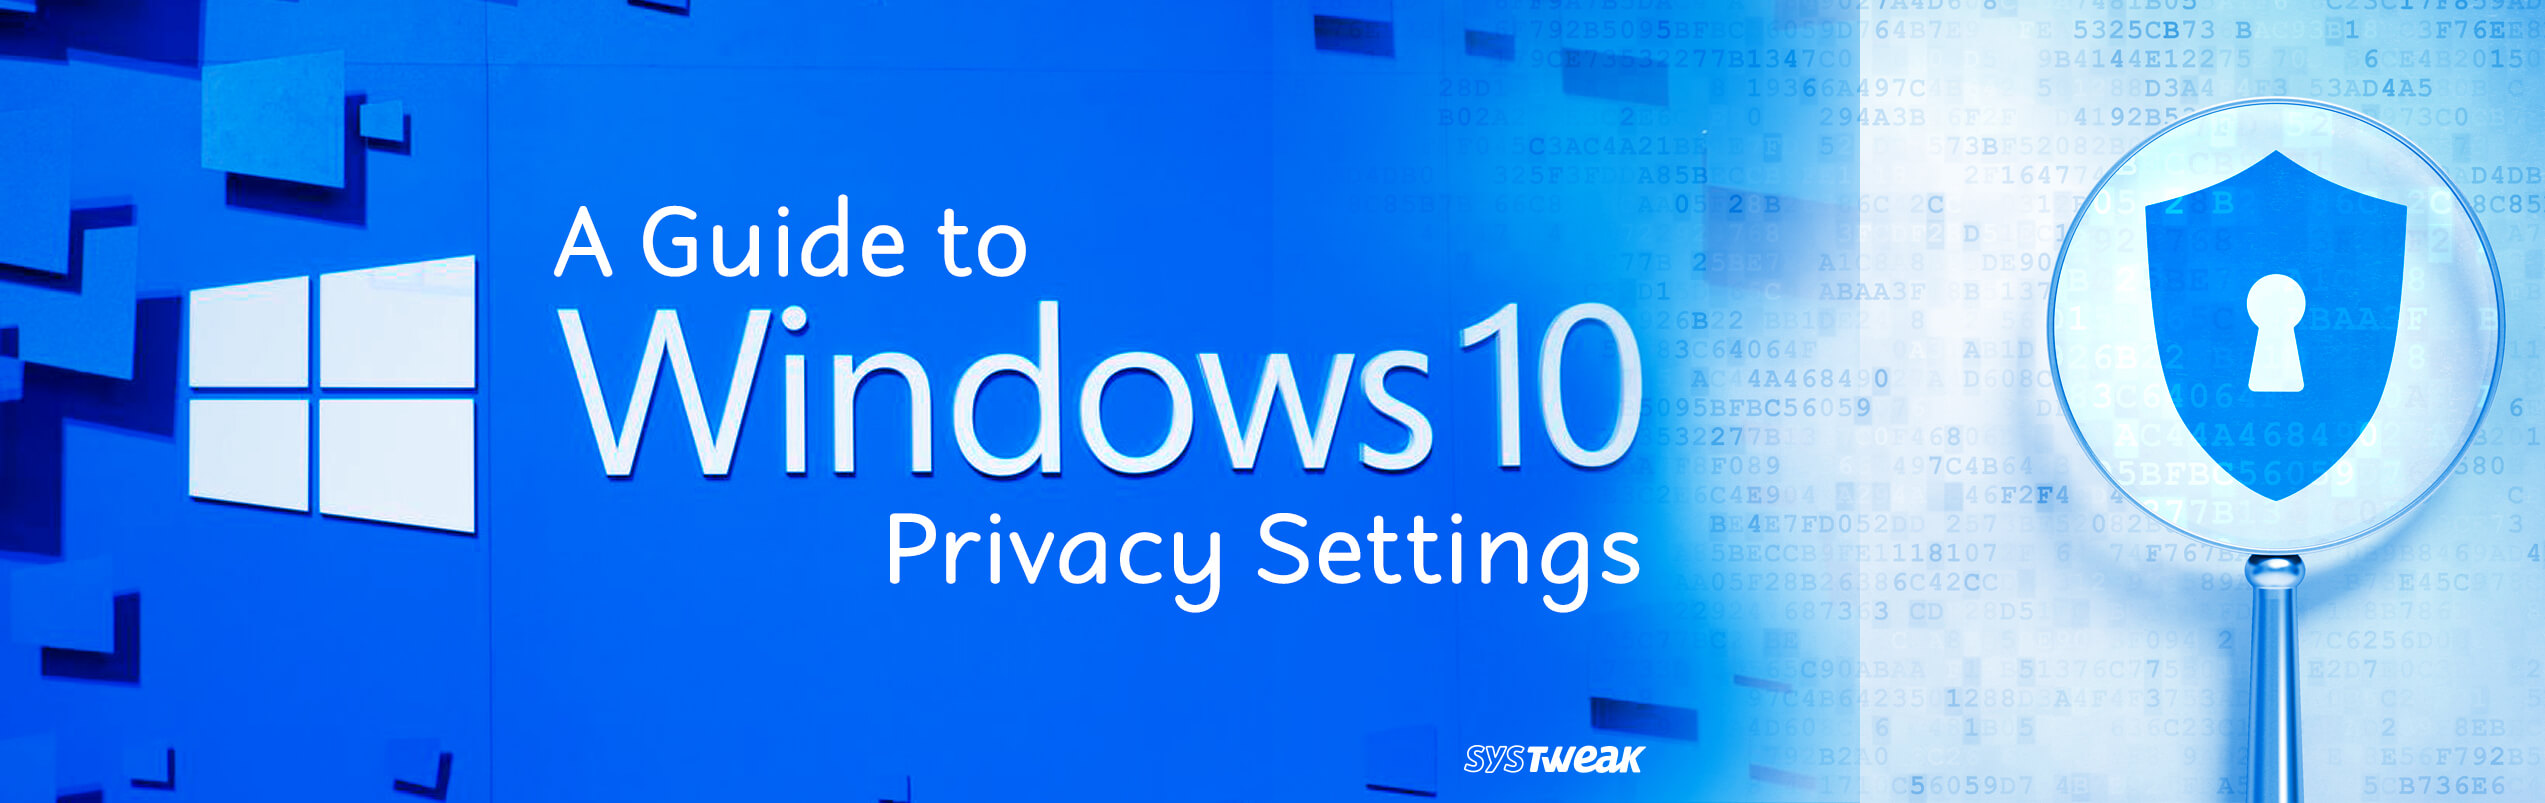 A Guide To Windows 10 Privacy Settings